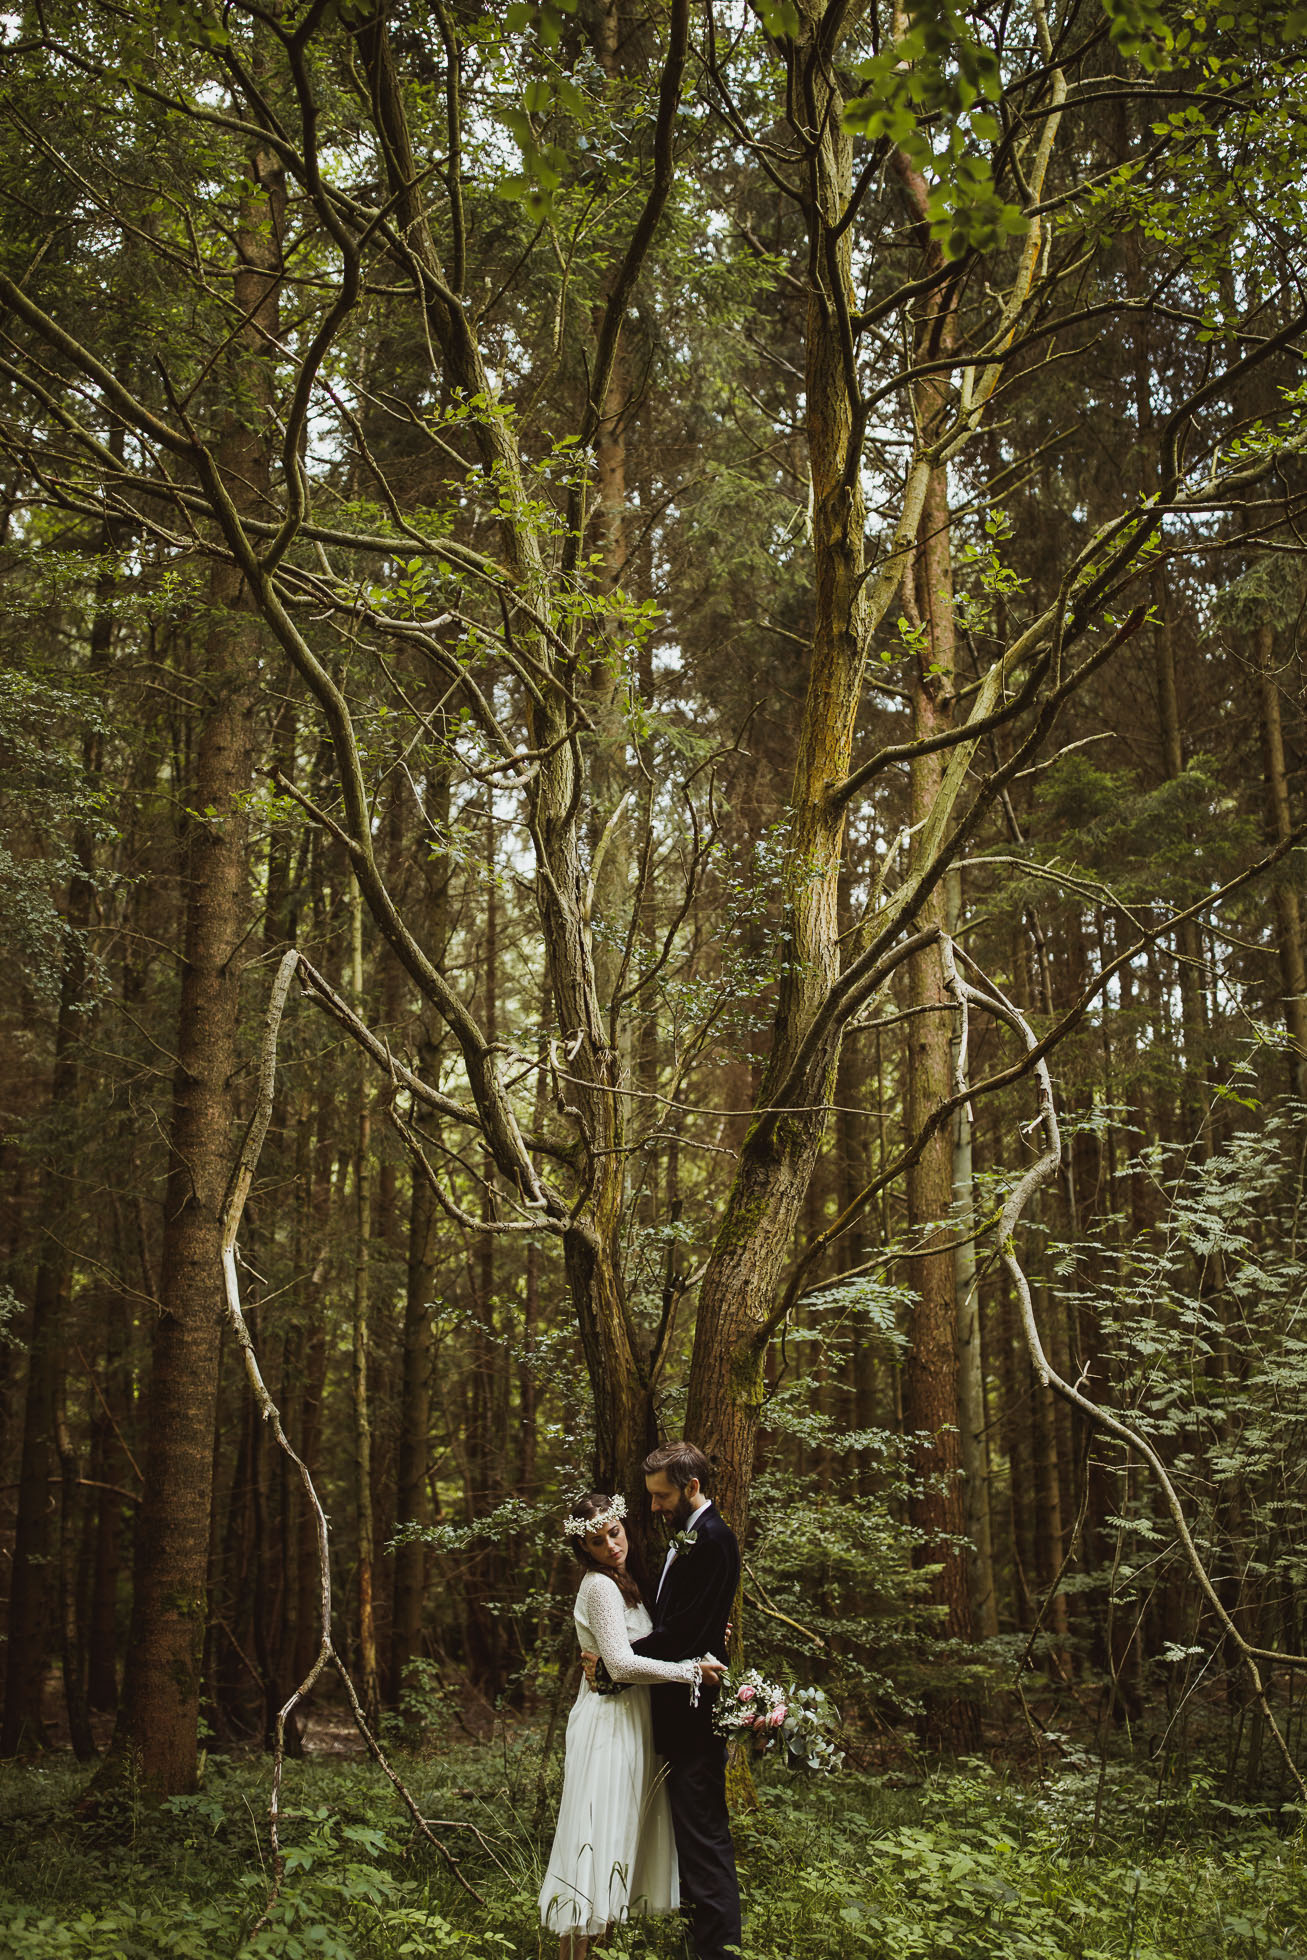 pickering_wedding_photographer-58.jpg